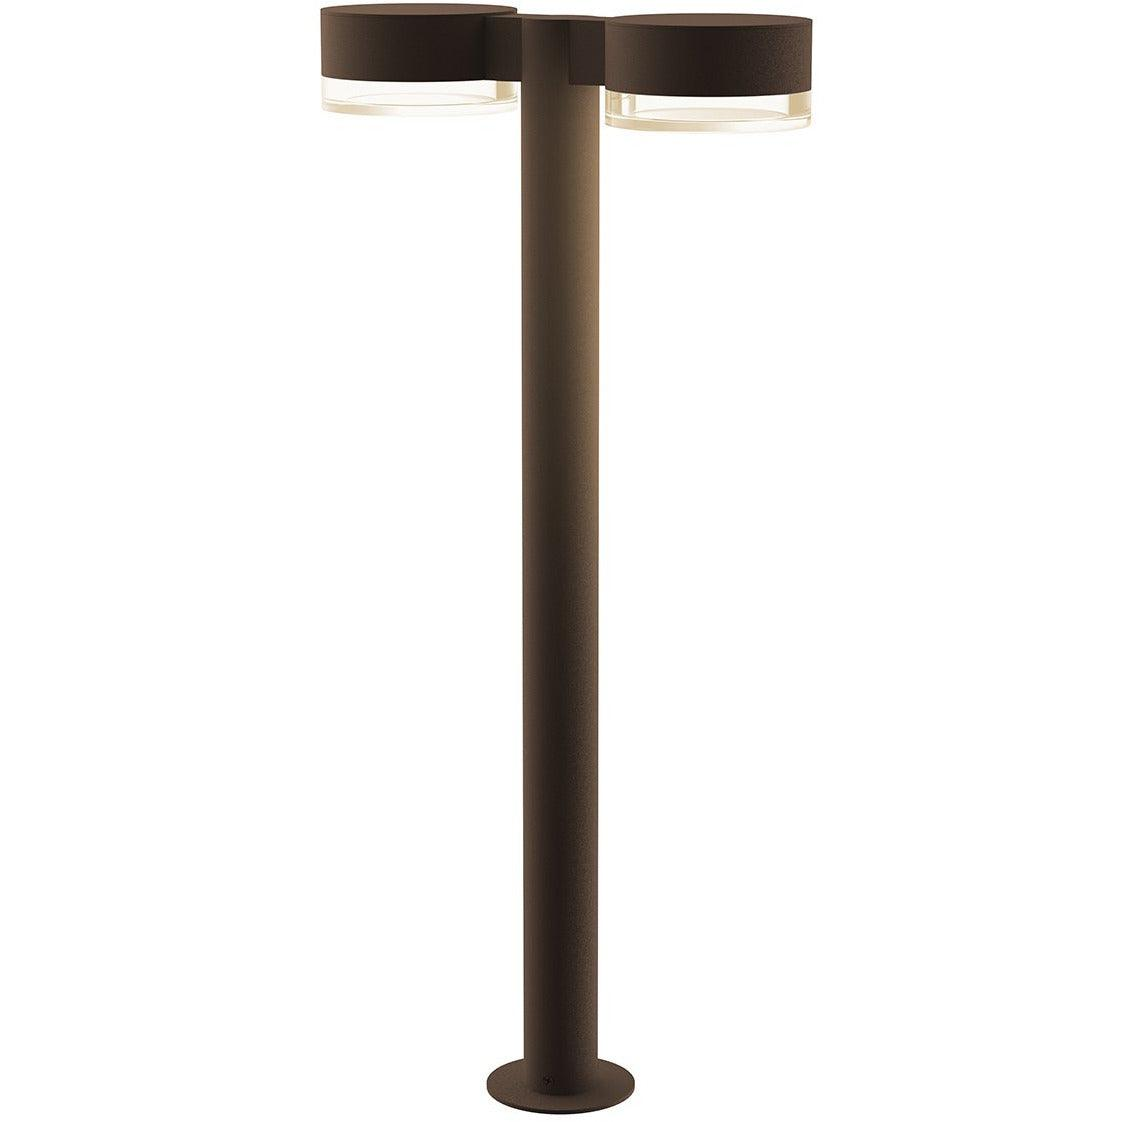 Sonneman - A Way of Light - 7308.PC.FH.72-WL - LED Bollard - REALS - Textured Bronze